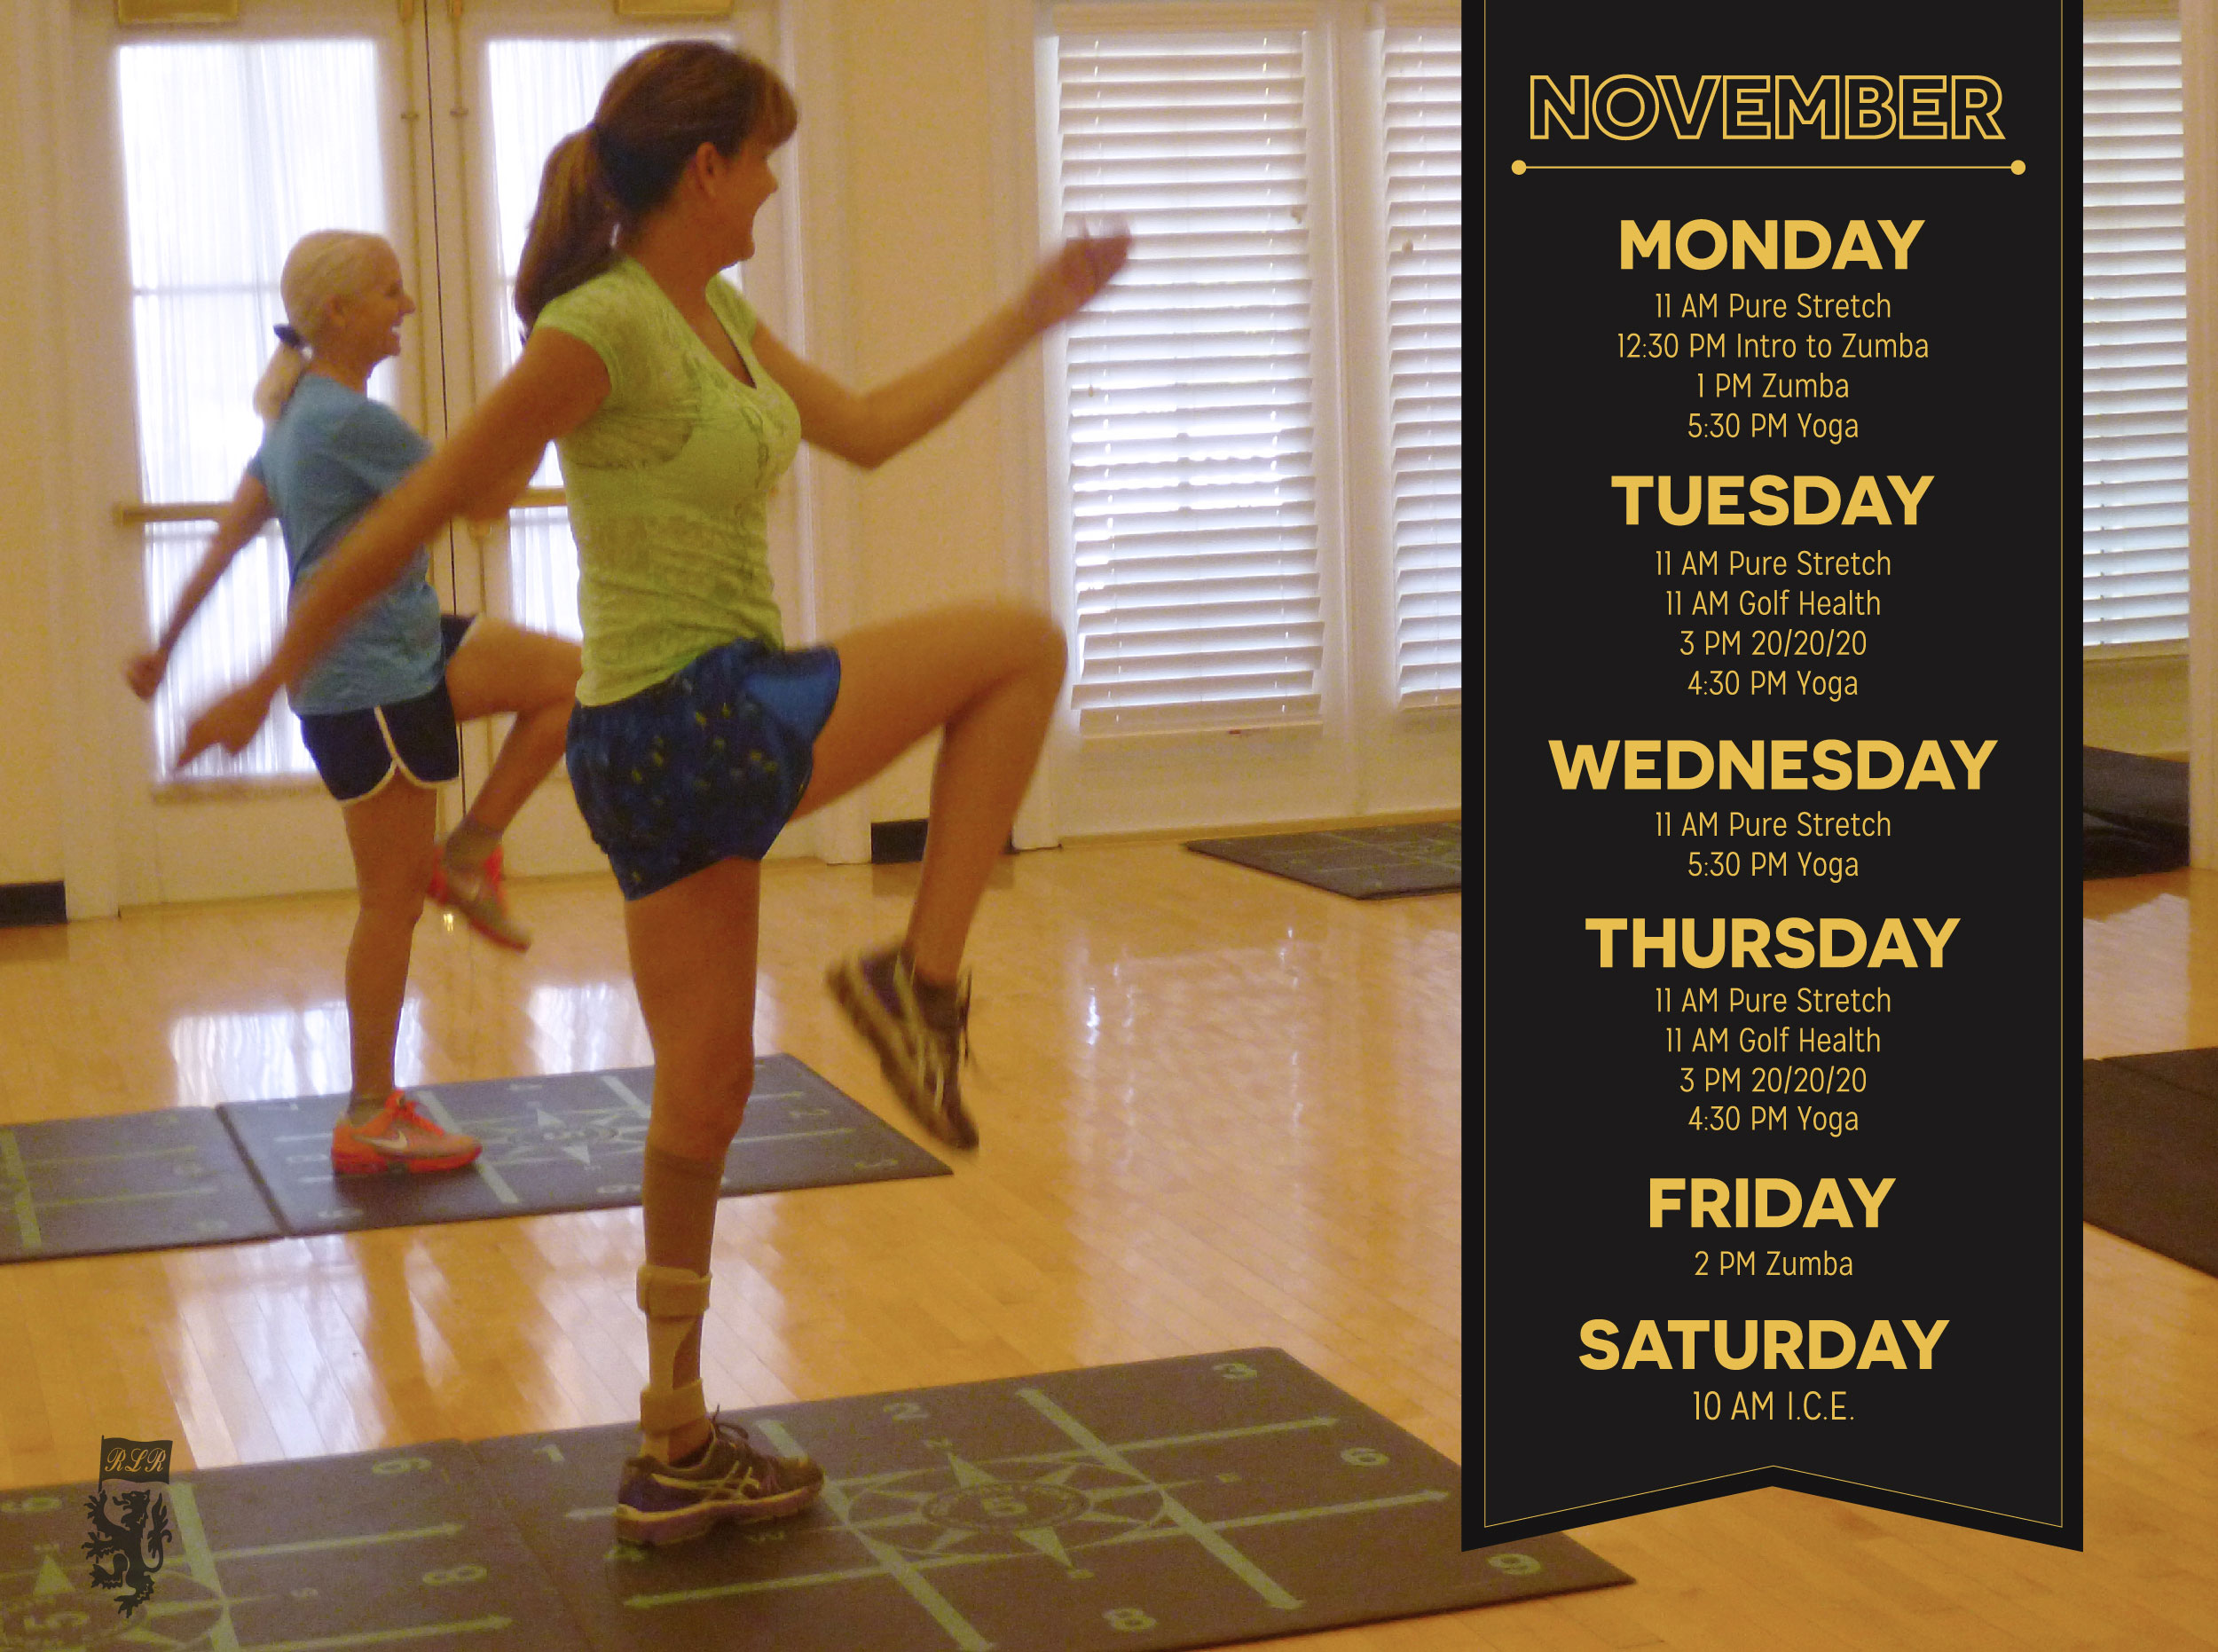 November-Fitness-Schedule-03-revised